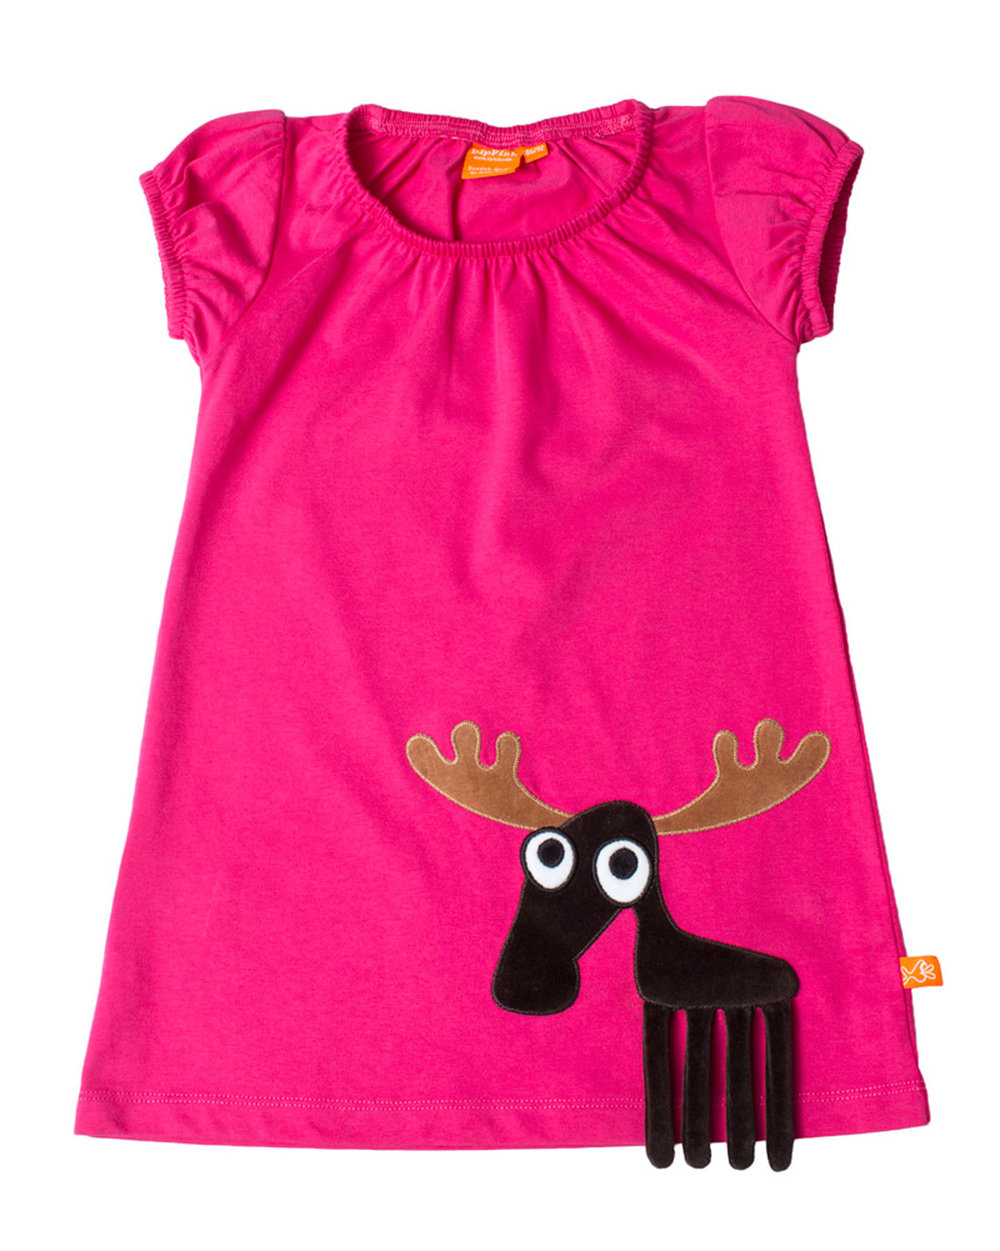 cerise_moose-dress_lip1500.jpg